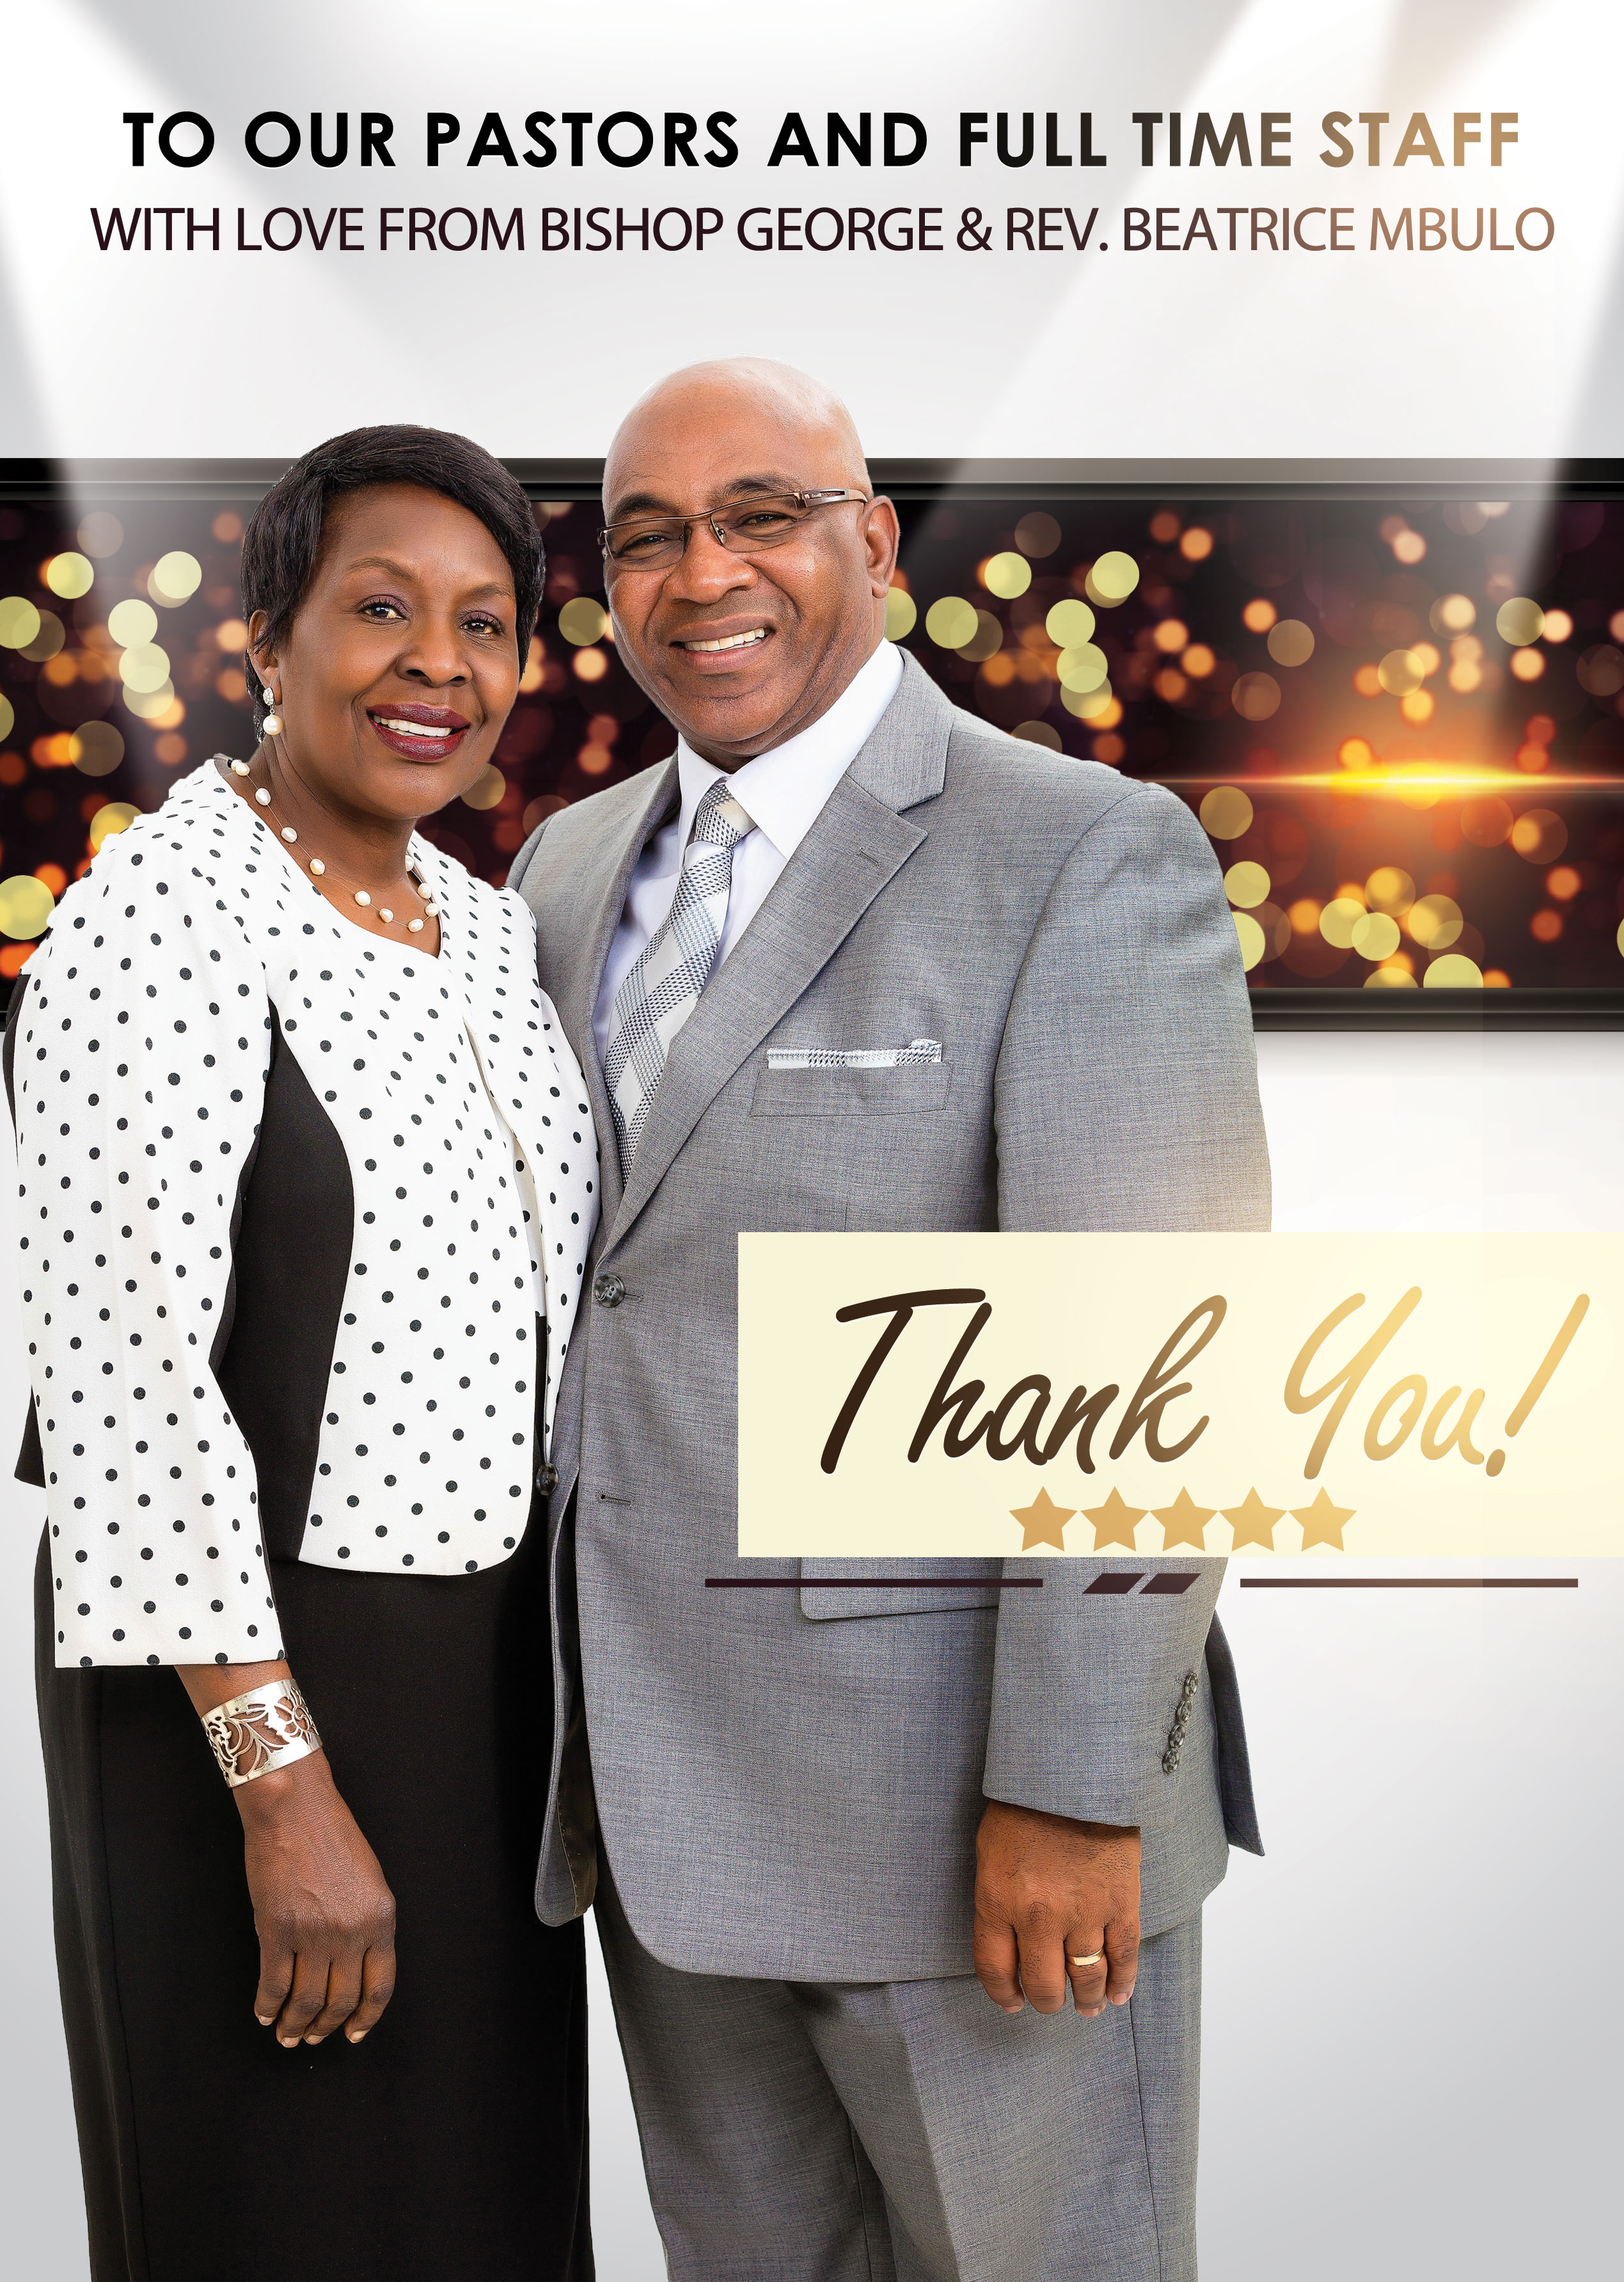 APPRECIATING OUR PASTORS AND FULL TIME STAFF - Capital